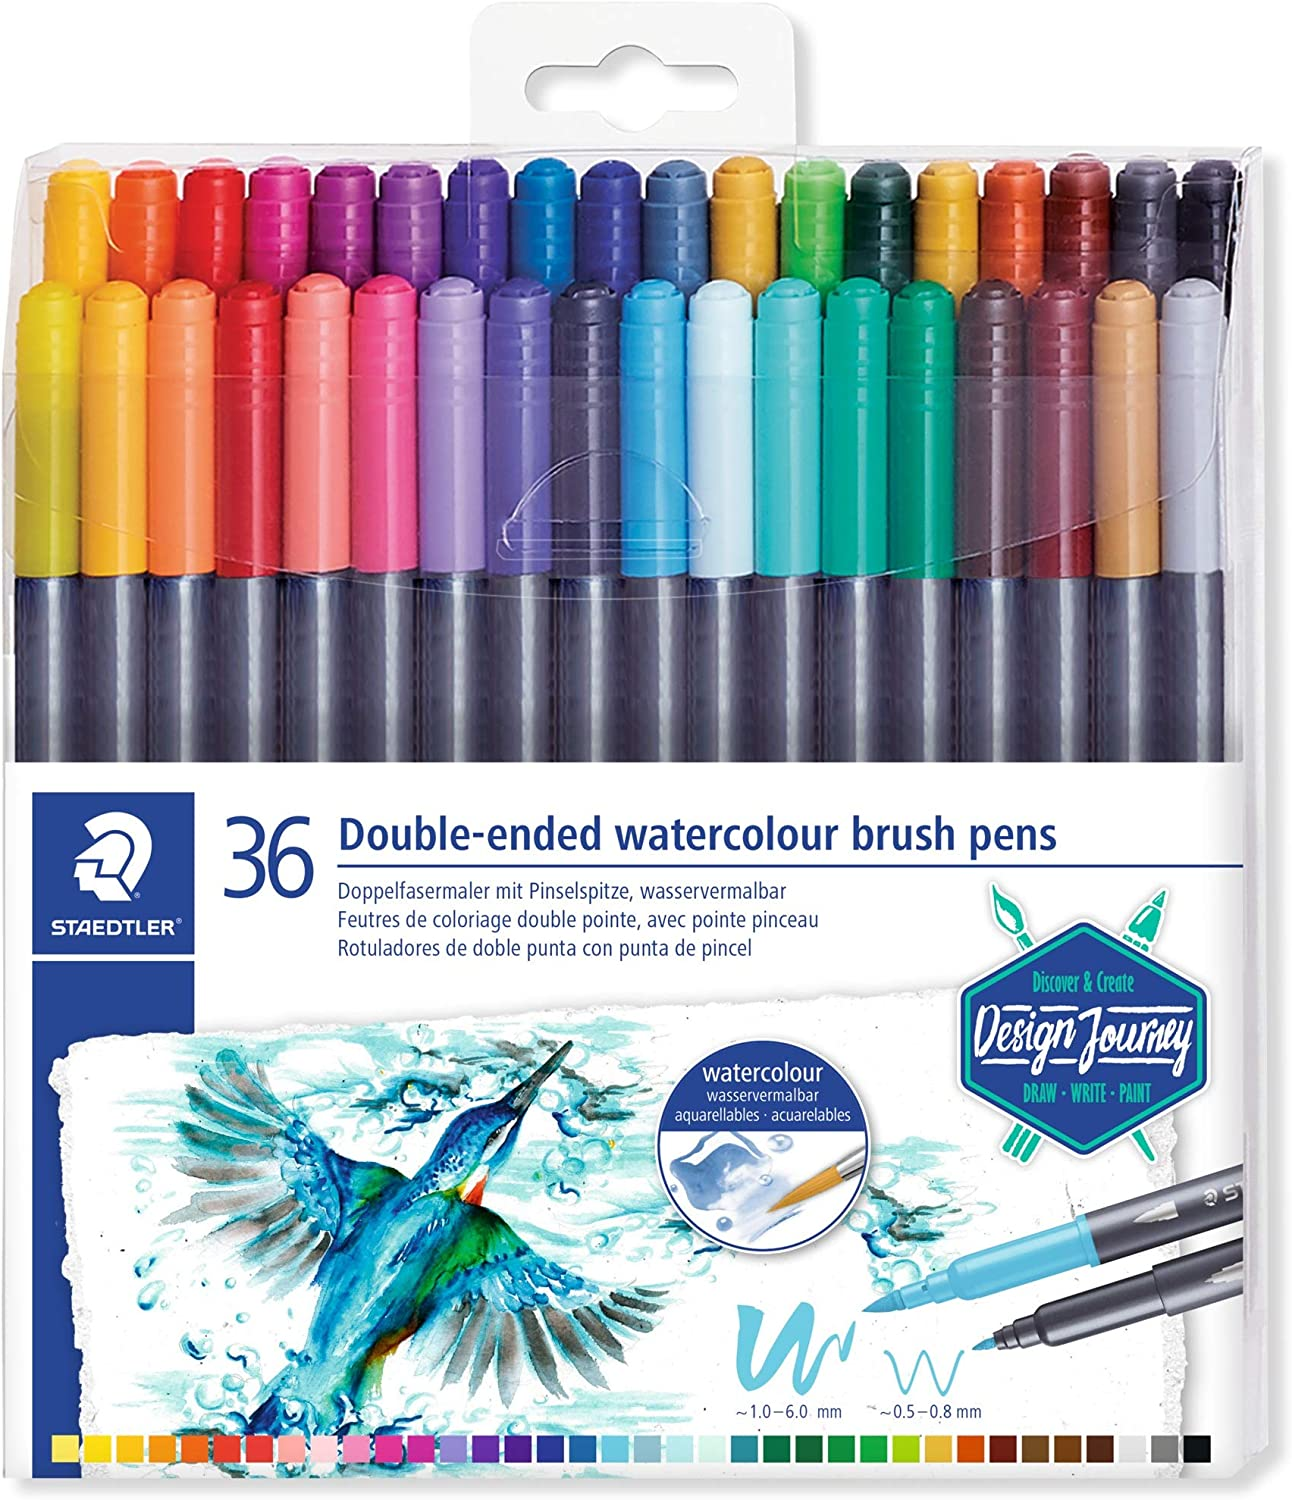 Staedtler Watercolour Brush Pens 3001 TB36, Rotulador de Doble Punta de Fibra Acuarelable, 36 unidades, Multicolor: Amazon.es: Hogar